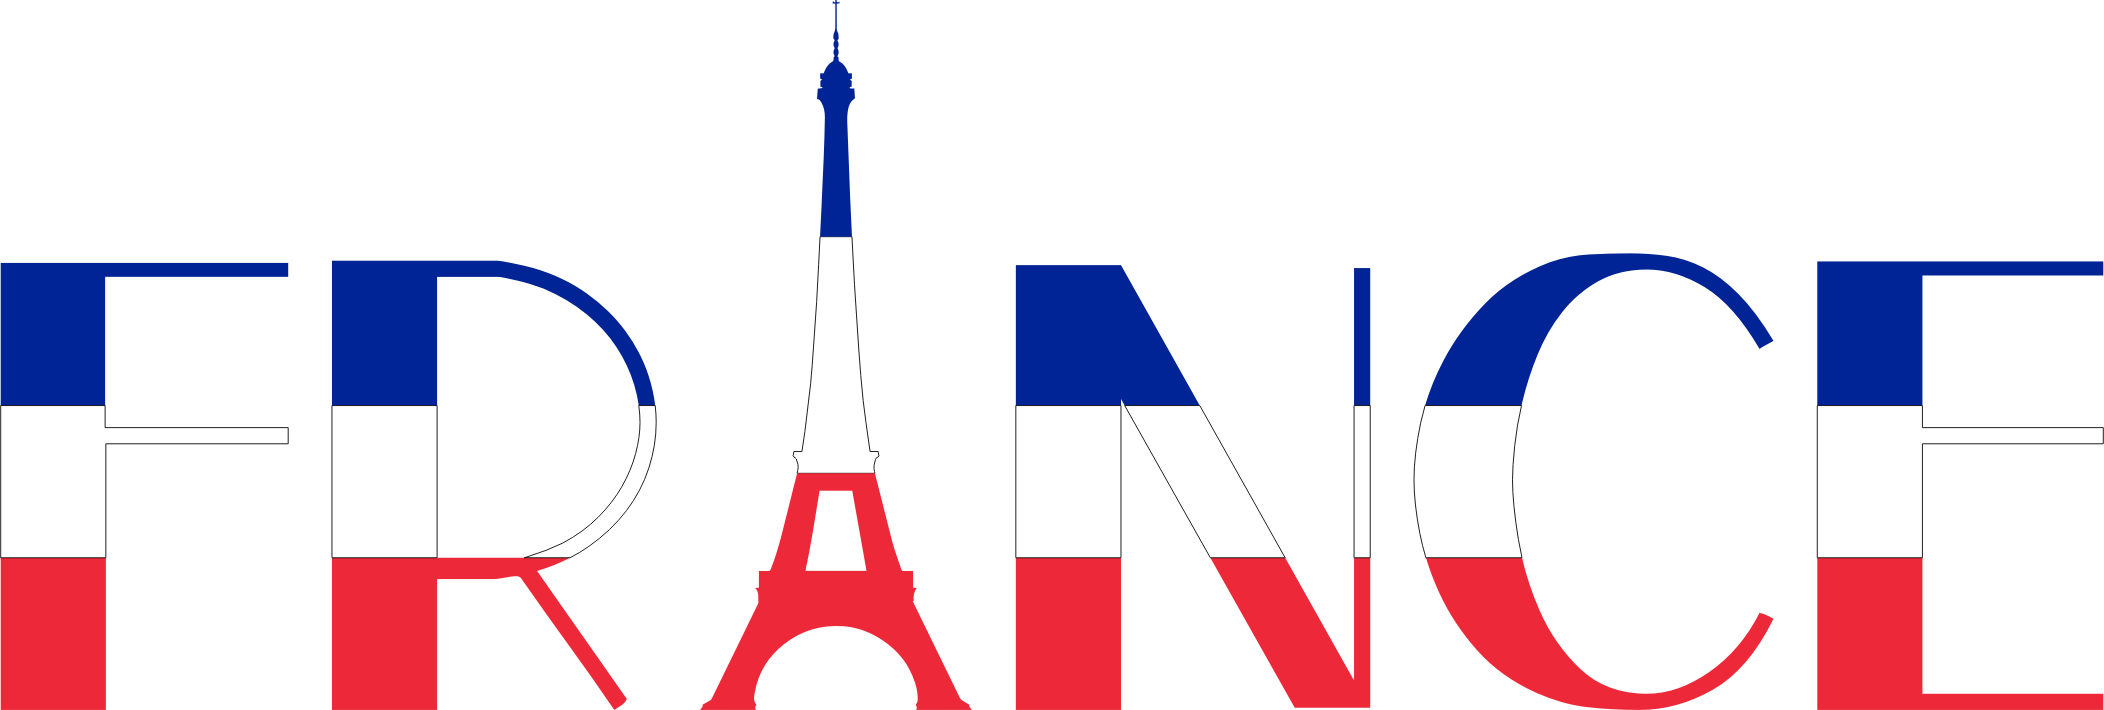 France clipart #2, Download drawings